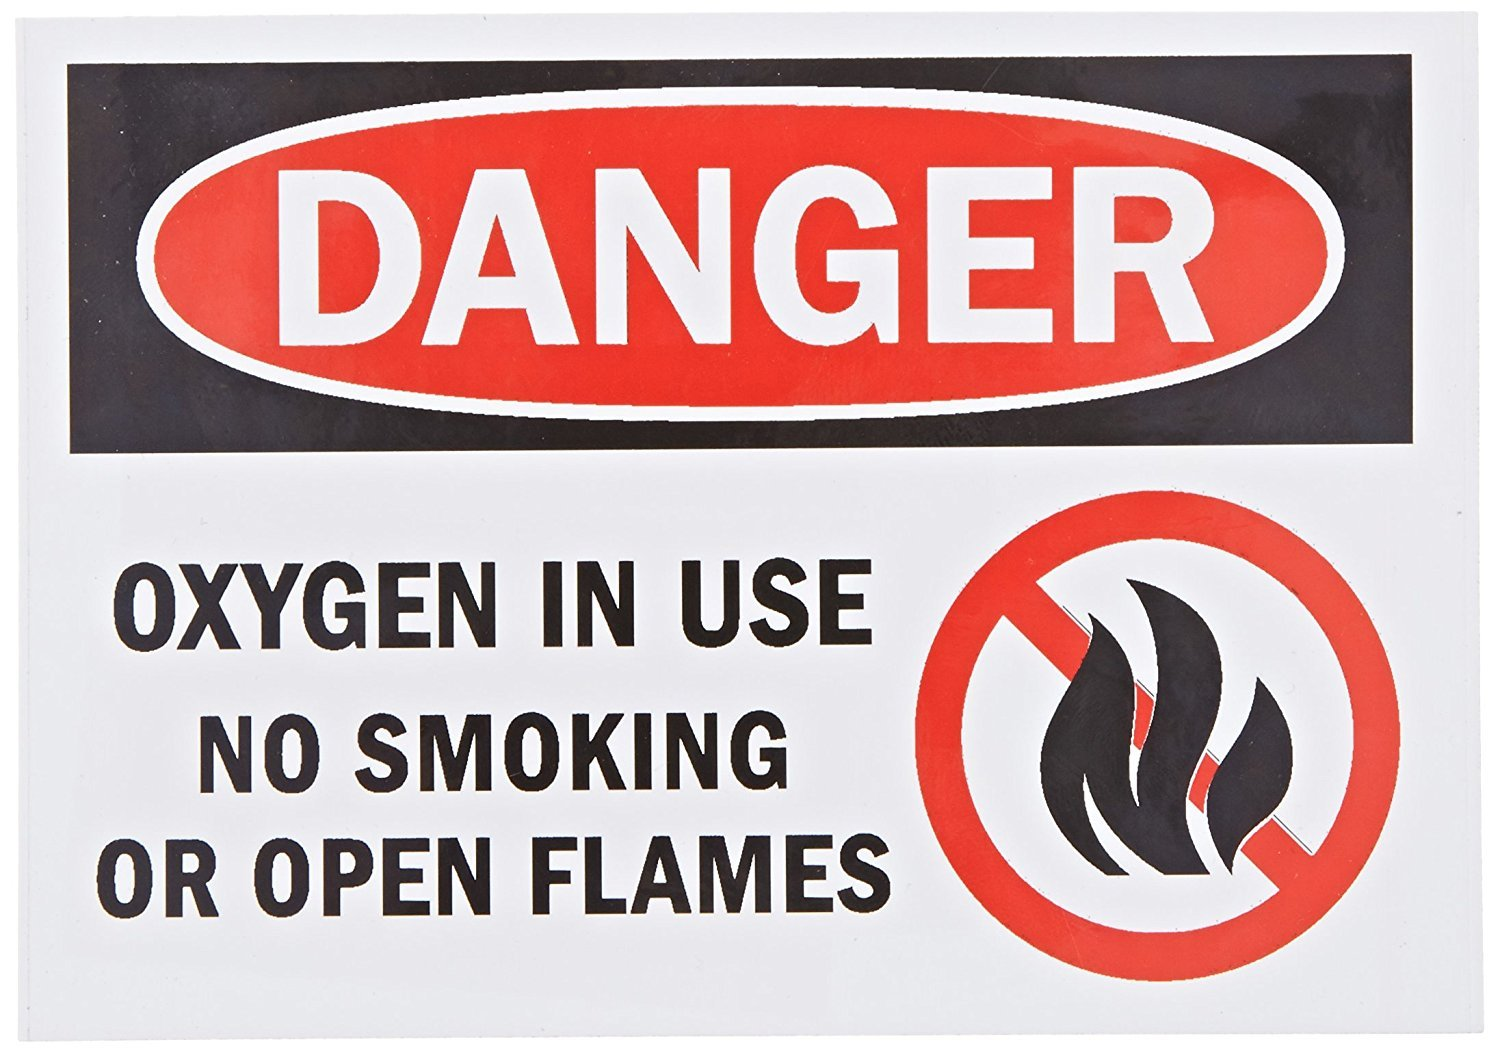 Danger: Oxygen in Use No Smoking, 3.5